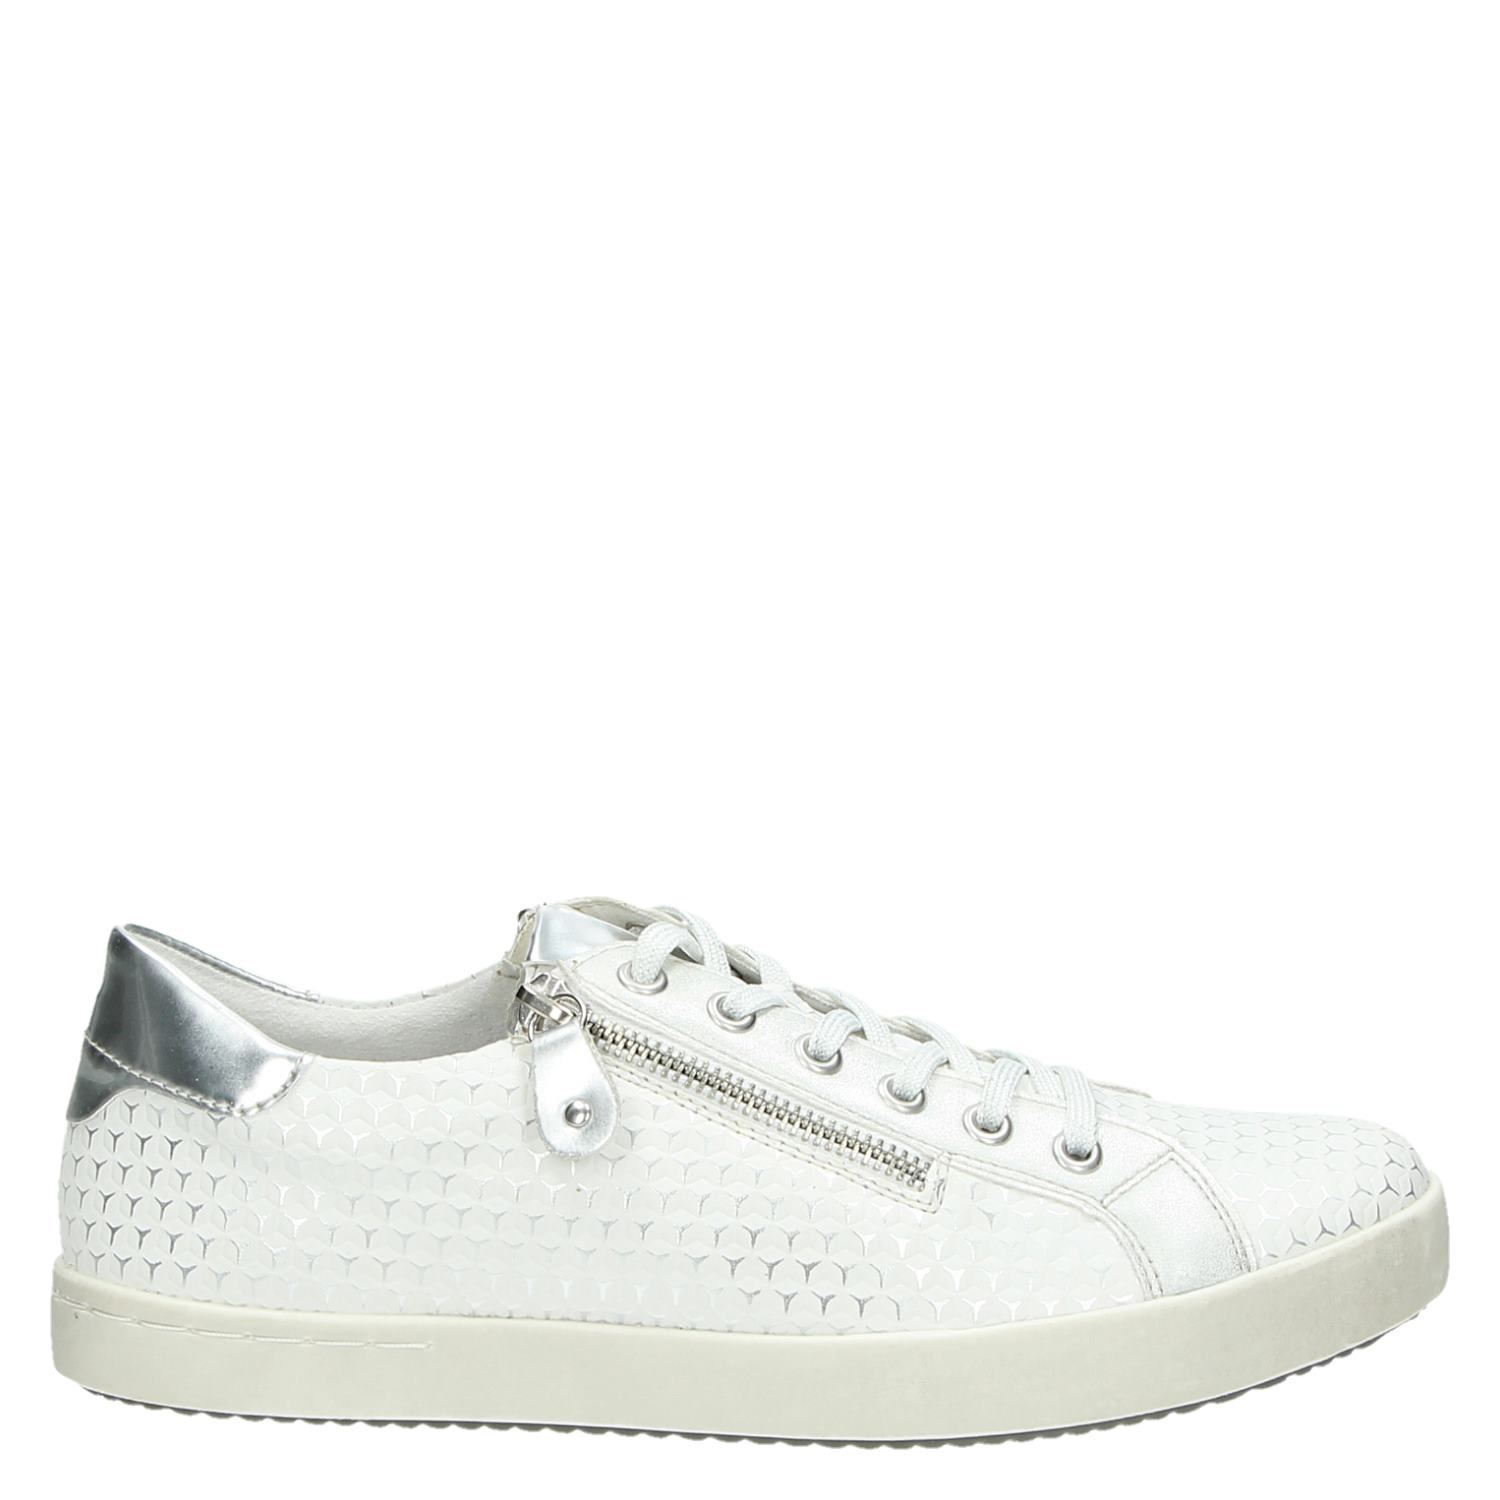 Remonte Wit Lage Remonte Sneakers Sneakers Wit Dames Dames Lage wgvCqxxZp